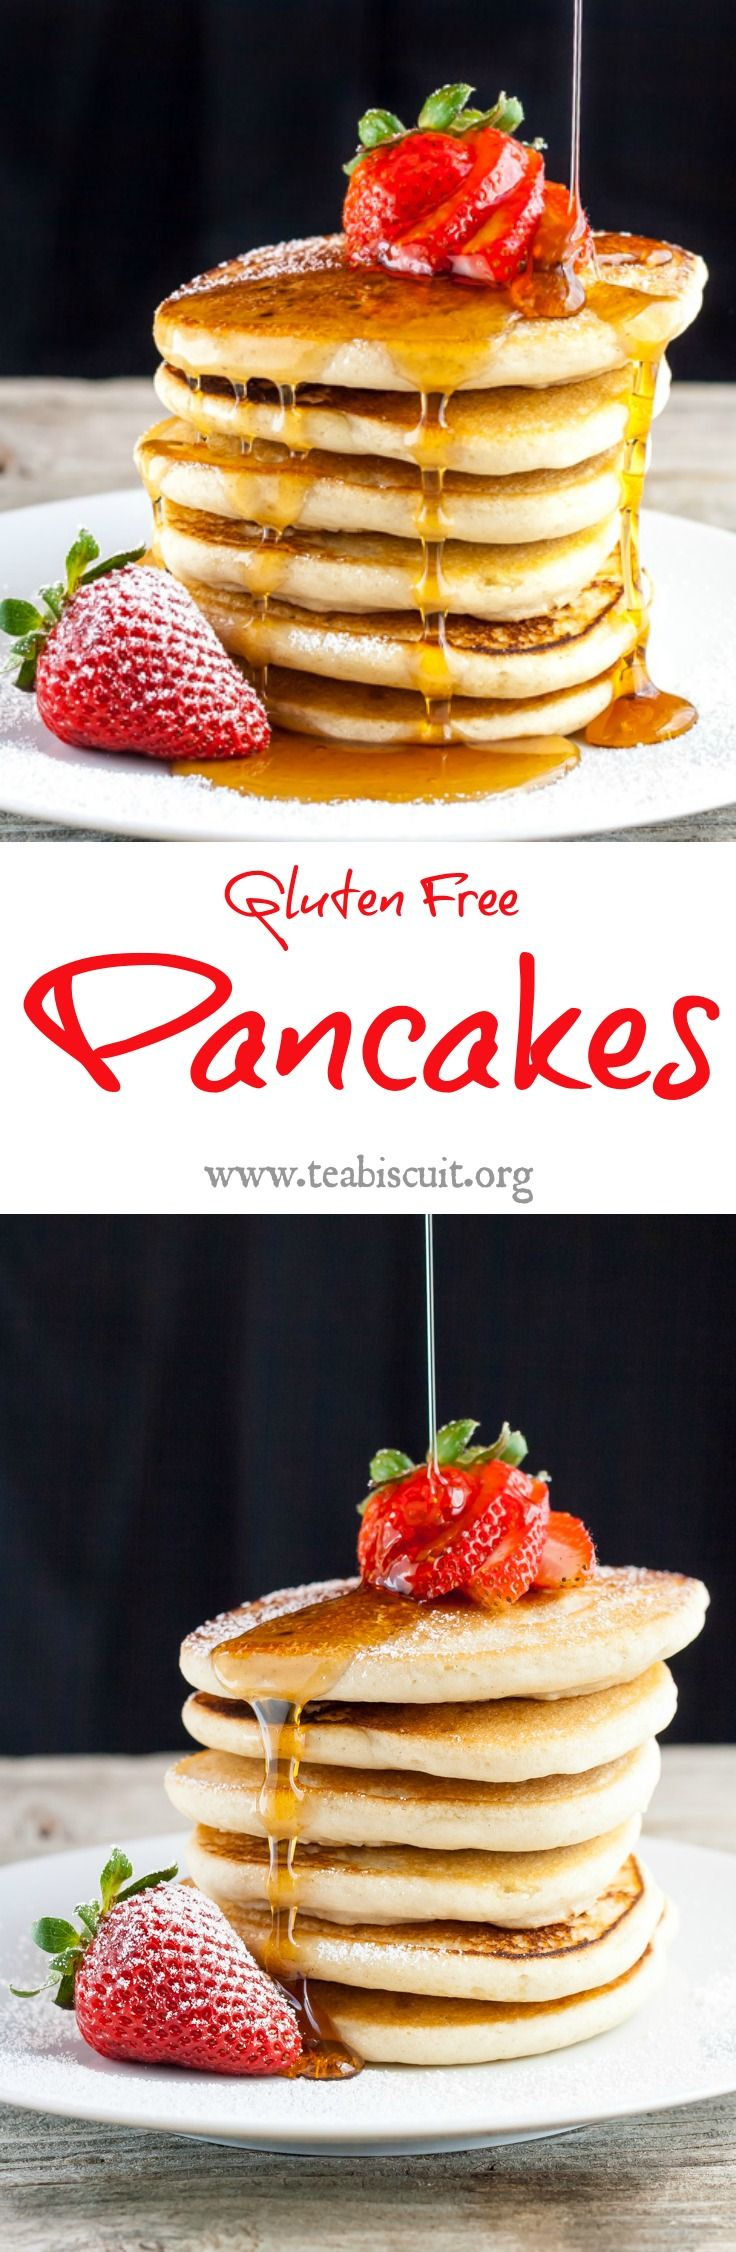 A quick and easy gluten free pancake recipe that is far superior to any boxed mixes you've tried!